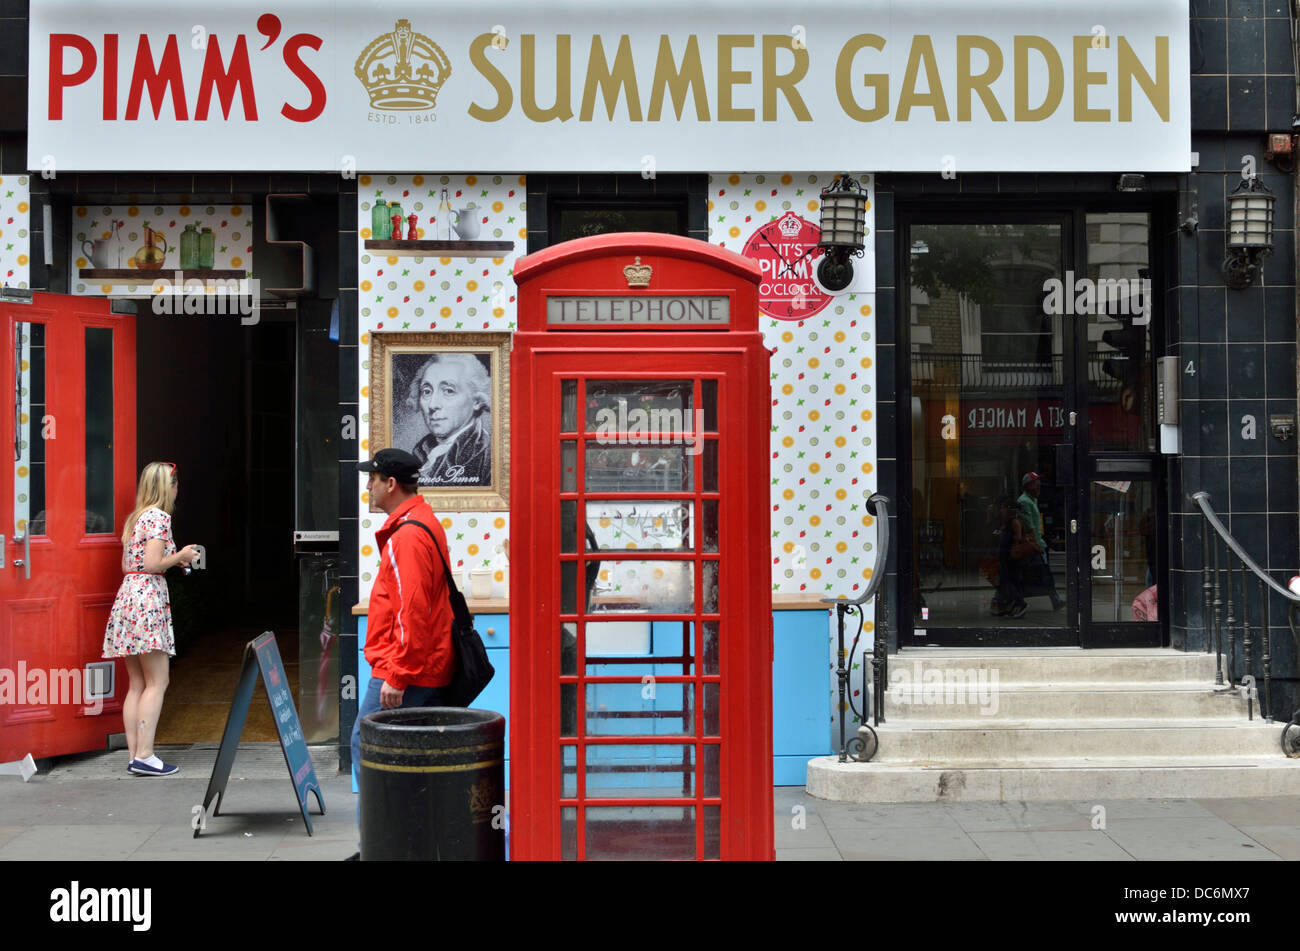 Pleasing Covent Garden London Uk Stock Photos  Covent Garden London Uk  With Licious Pimms Summer Garden Promotion Event At White Space In Covent Garden  London Uk With Divine Garden Weather Station Also Giant Garden Gnome In Addition Green Garden London And Cheap Garden Pots As Well As Darkroot Garden Additionally Garden Hedgehog From Alamycom With   Divine Covent Garden London Uk Stock Photos  Covent Garden London Uk  With Pleasing Cheap Garden Pots As Well As Darkroot Garden Additionally Garden Hedgehog And Licious Pimms Summer Garden Promotion Event At White Space In Covent Garden  London Uk Via Alamycom